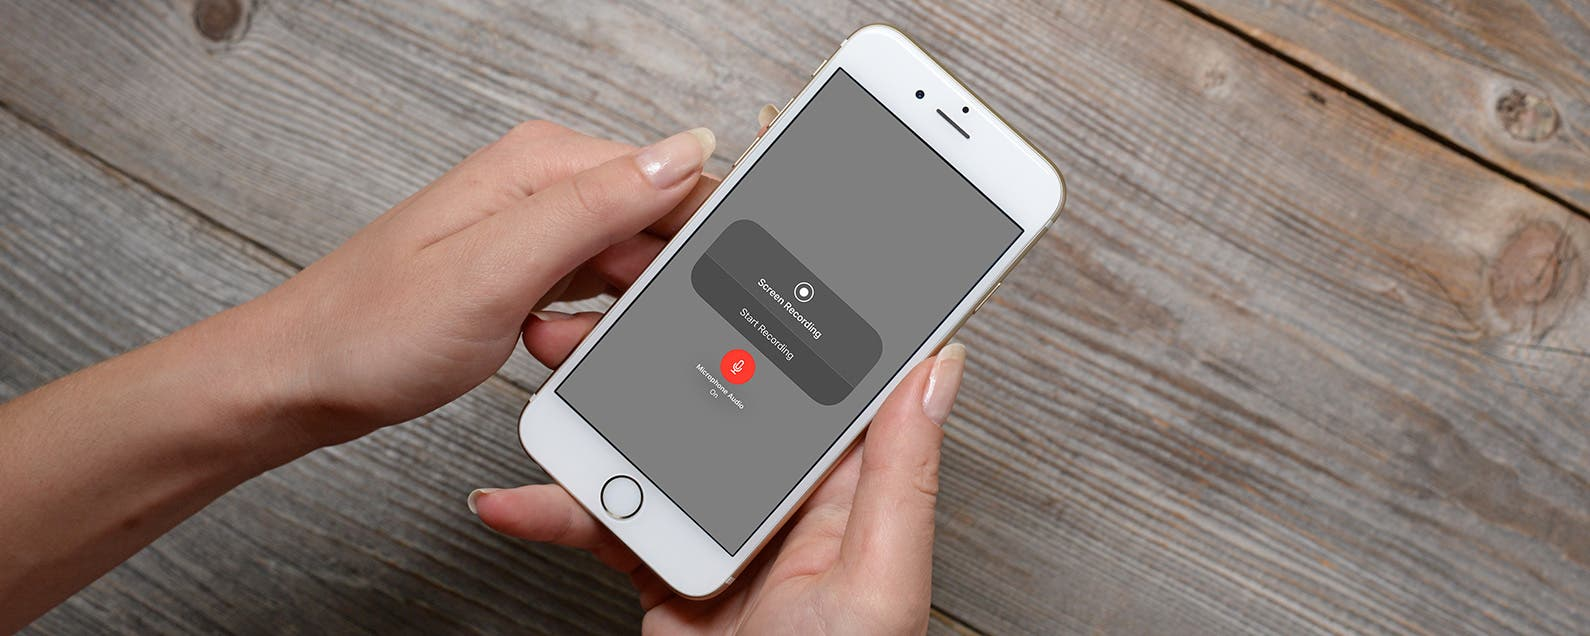 How to Screen Record with Audio on an iPhone & iPad ...